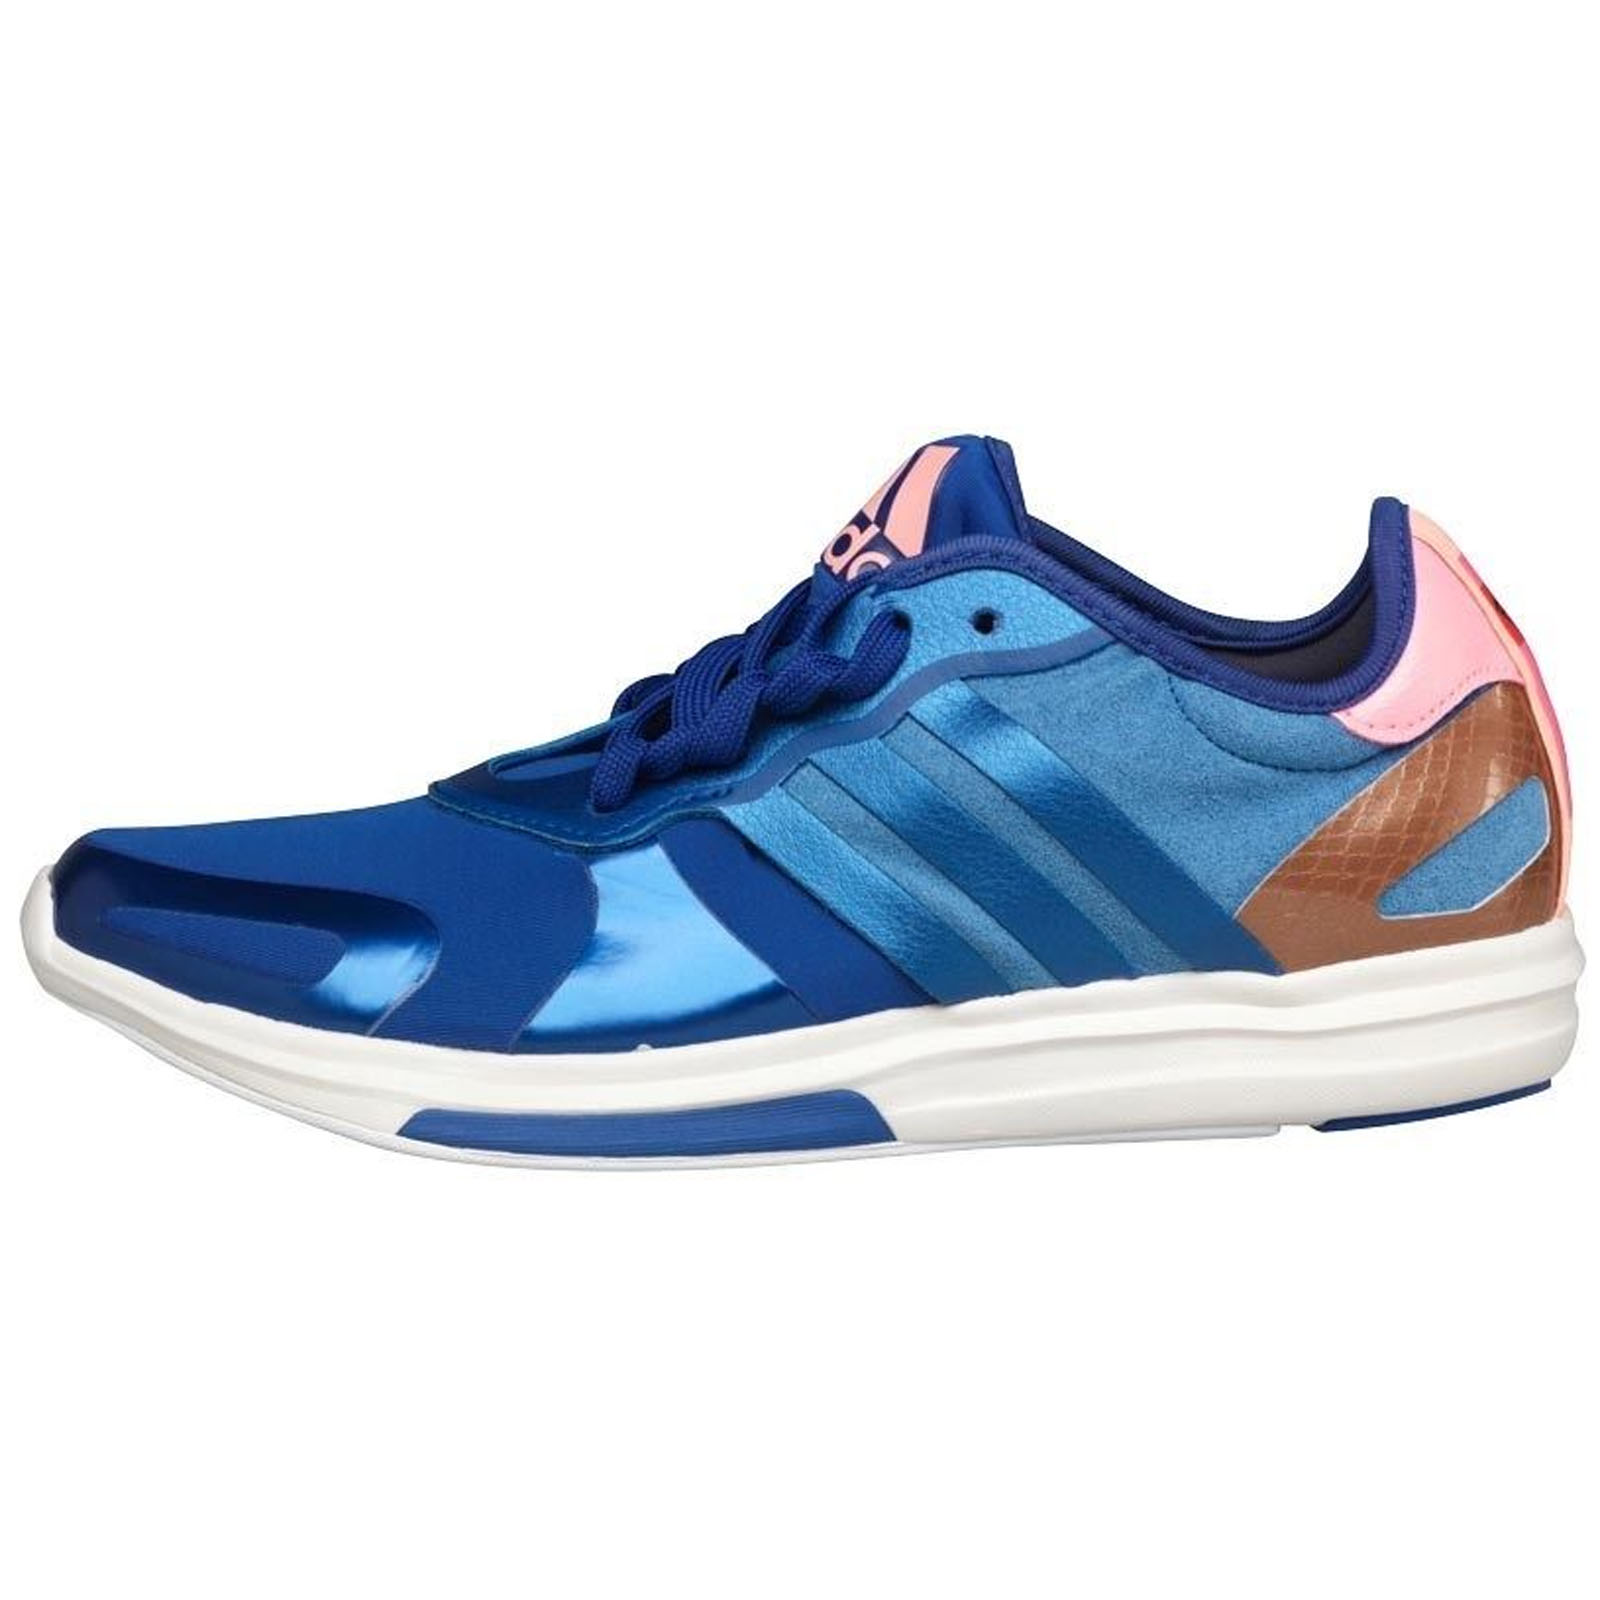 Adidas stellarsport yvori AZUL Pink Gold  mujer Cross training zapatos